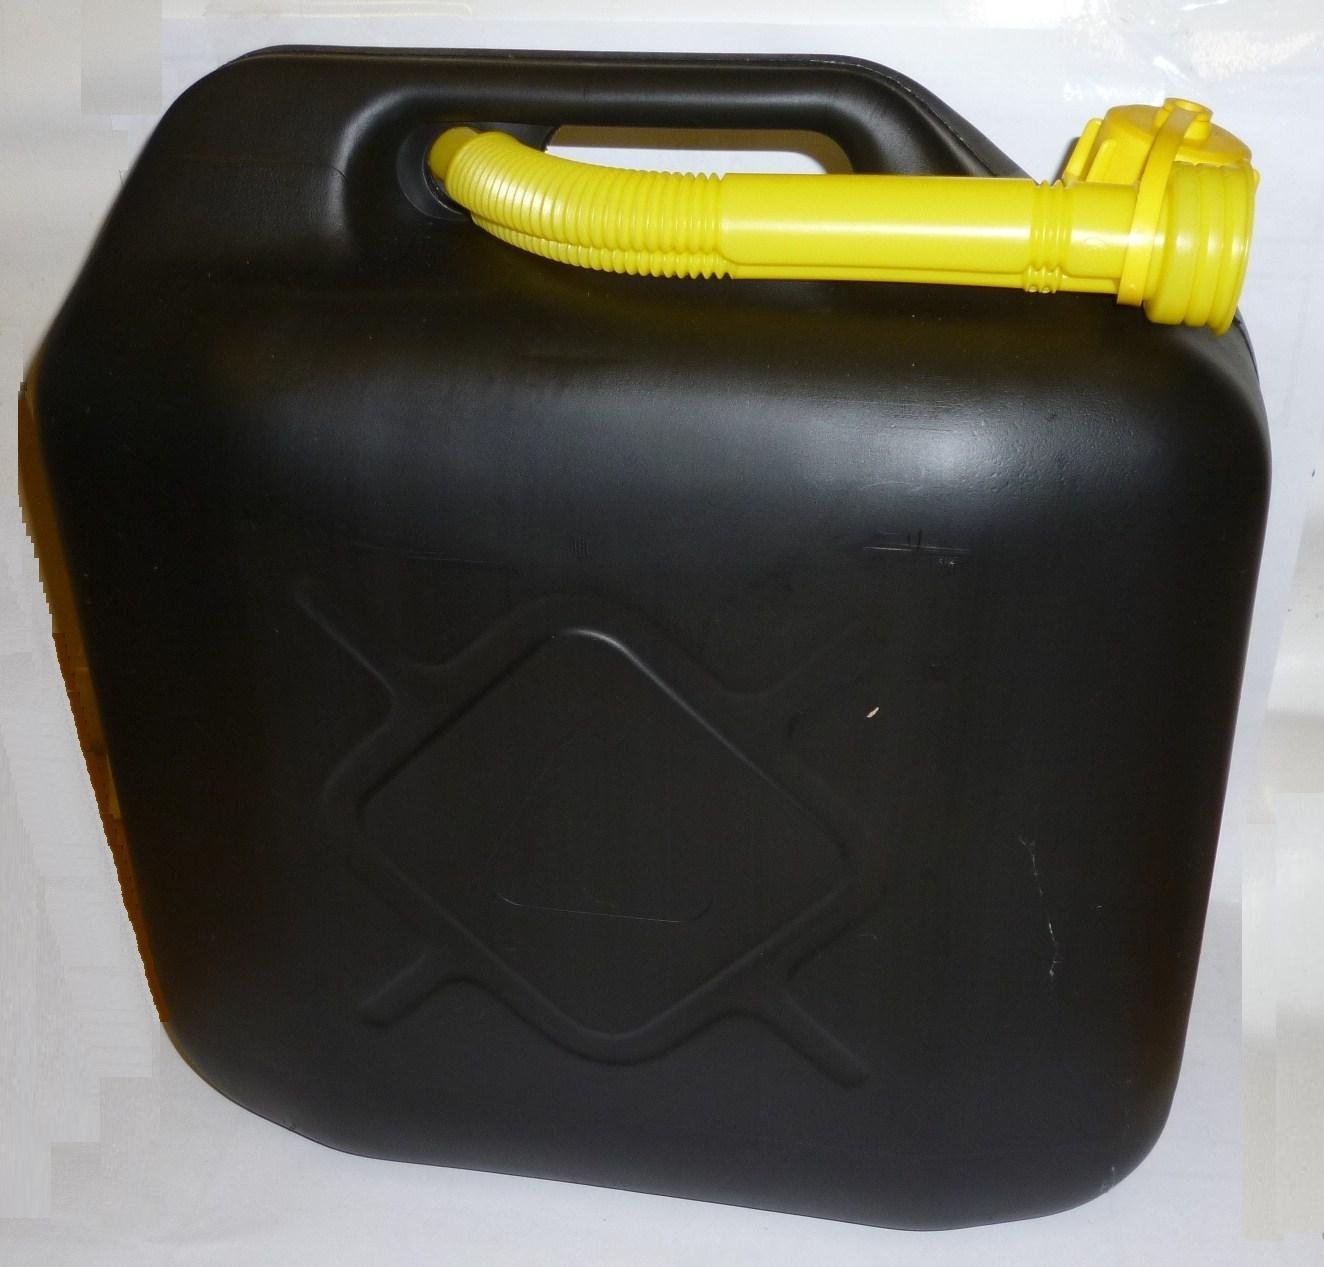 Fuel Jerry Can 20 Litre Plastic Black With Pouring Spout 2 Pack/S All Ride